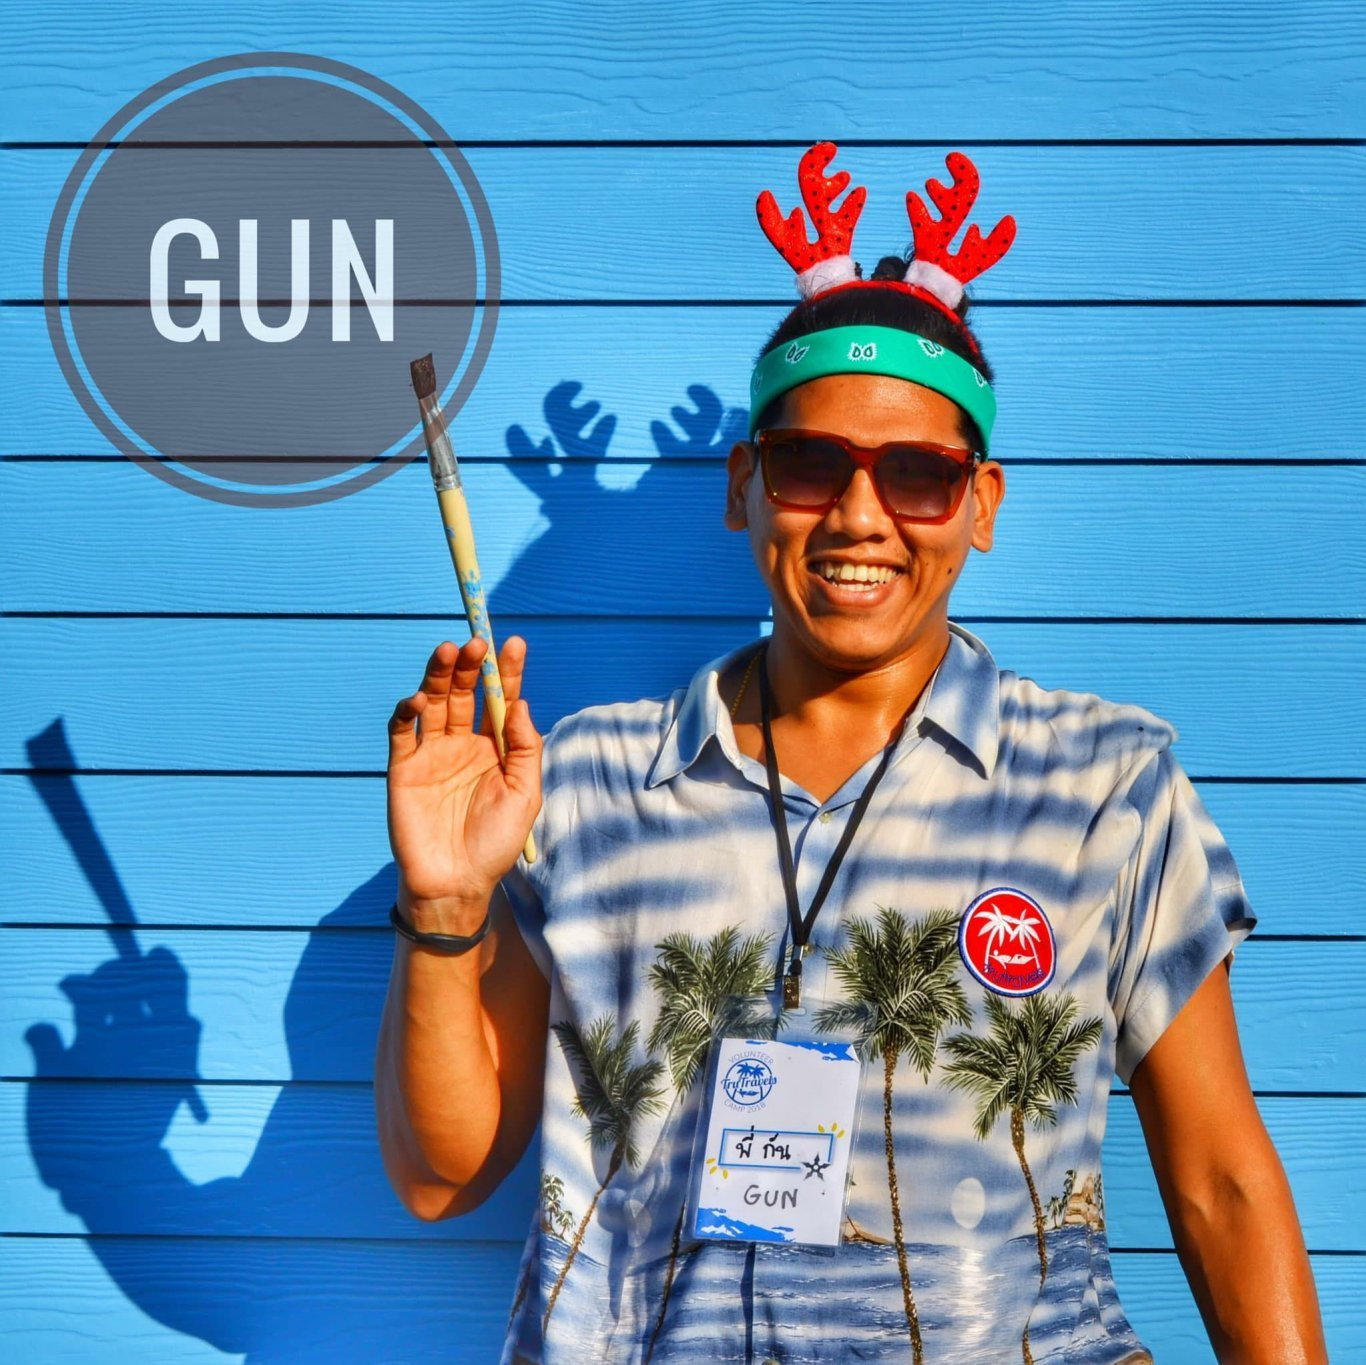 Man wearing colourful shirt wearing red Christmas antlers holding paint brush stood in front of bright blue backdrop